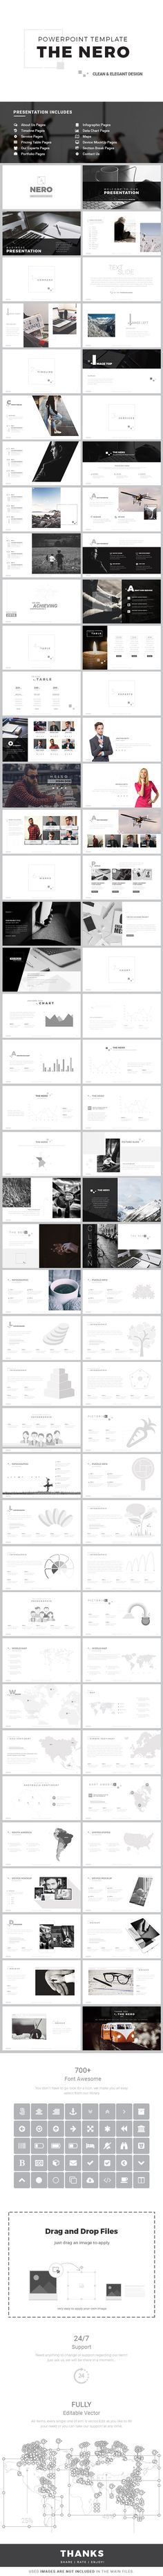 NERO - Powerpoint Template • Only available here! →…